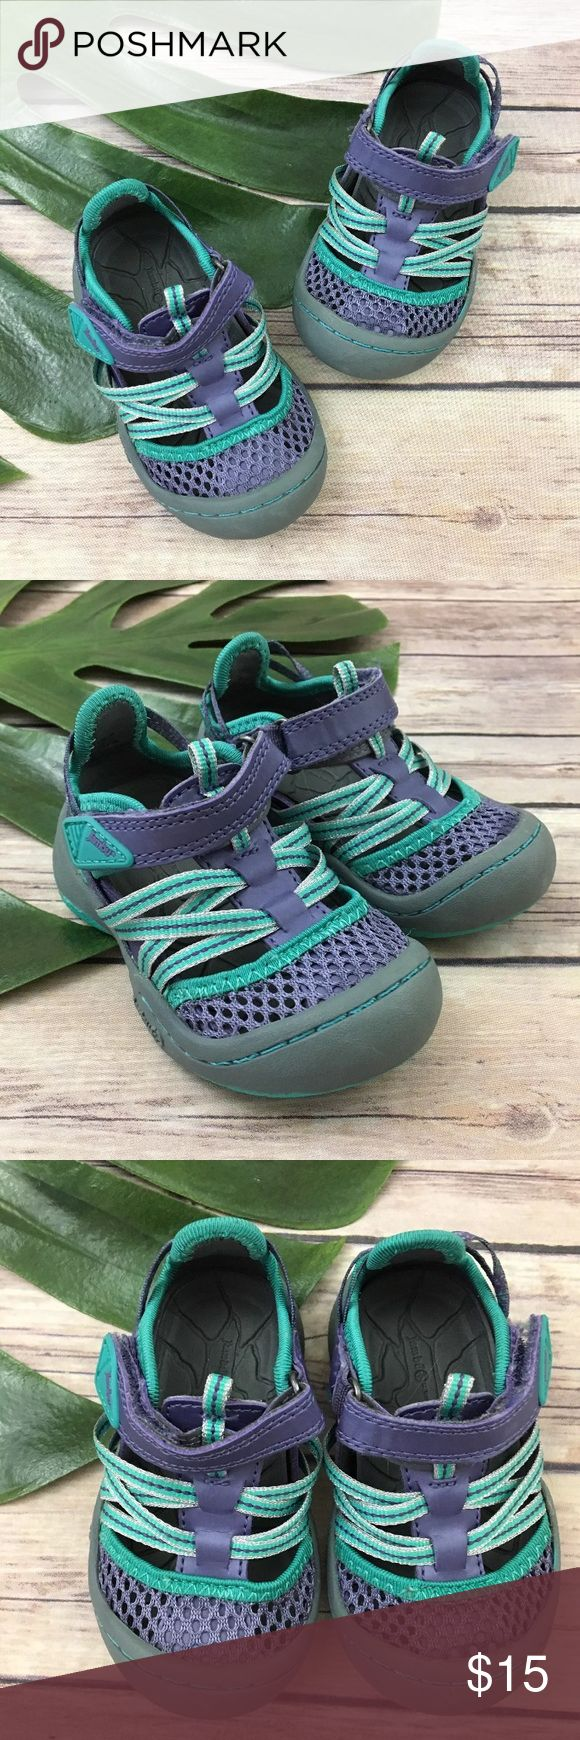 Jambu toddler girls Purple & Teal walking shoes Jambu toddler girl's water shoes, size 4. They are free from any rips or stains. Jambu Shoes Baby & Walker